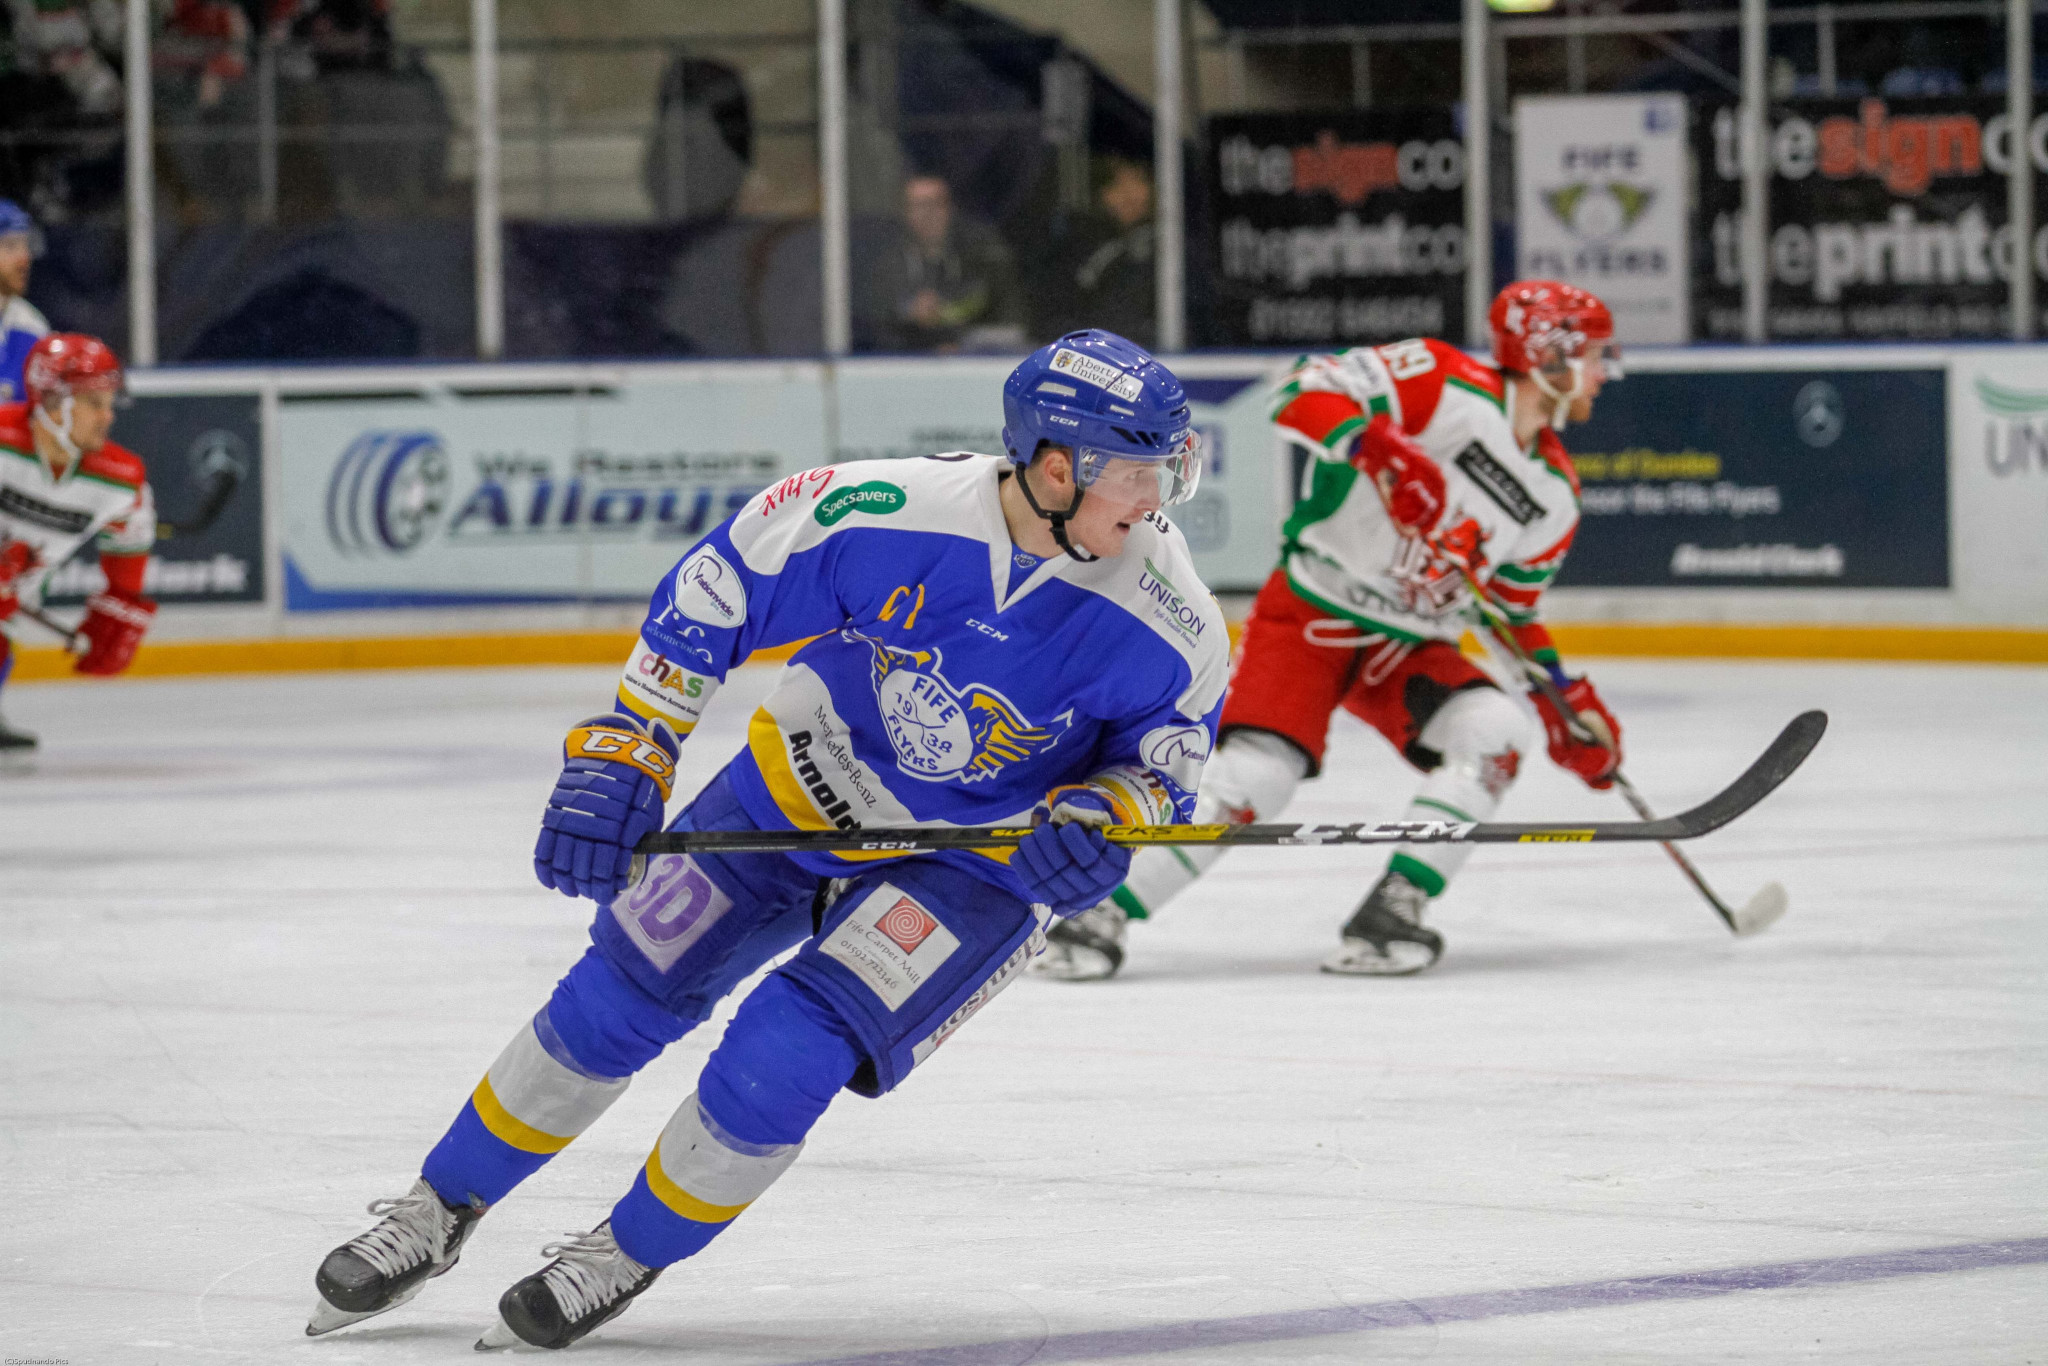 UK Government urged to give COVID-19 financial support to ice hockey